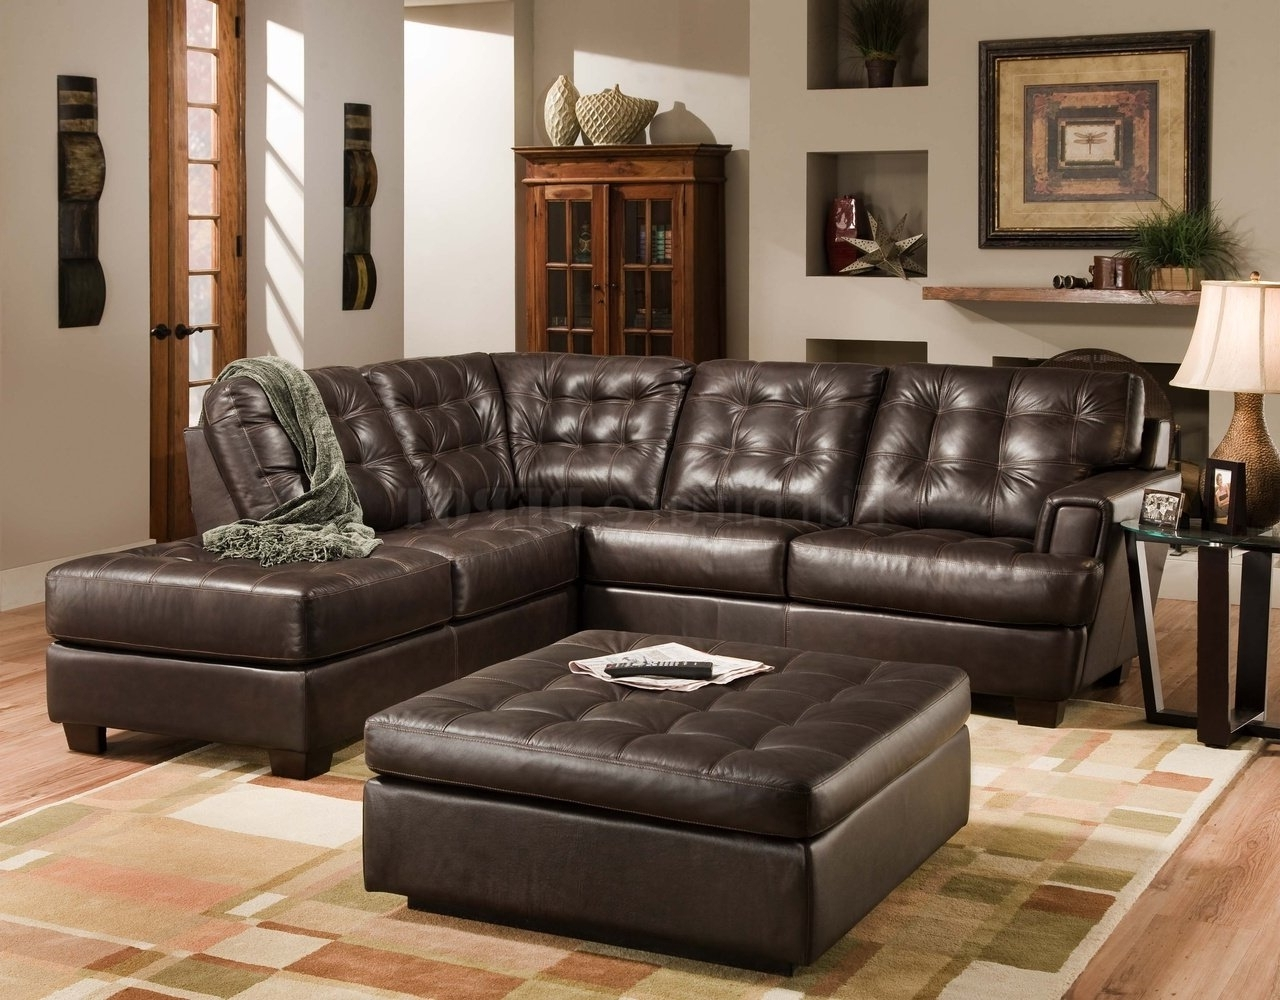 Emejing Brown Leather Sectional With Chaise Photos – Liltigertoo Inside Favorite Leather Sectionals With Chaise Lounge (View 3 of 15)